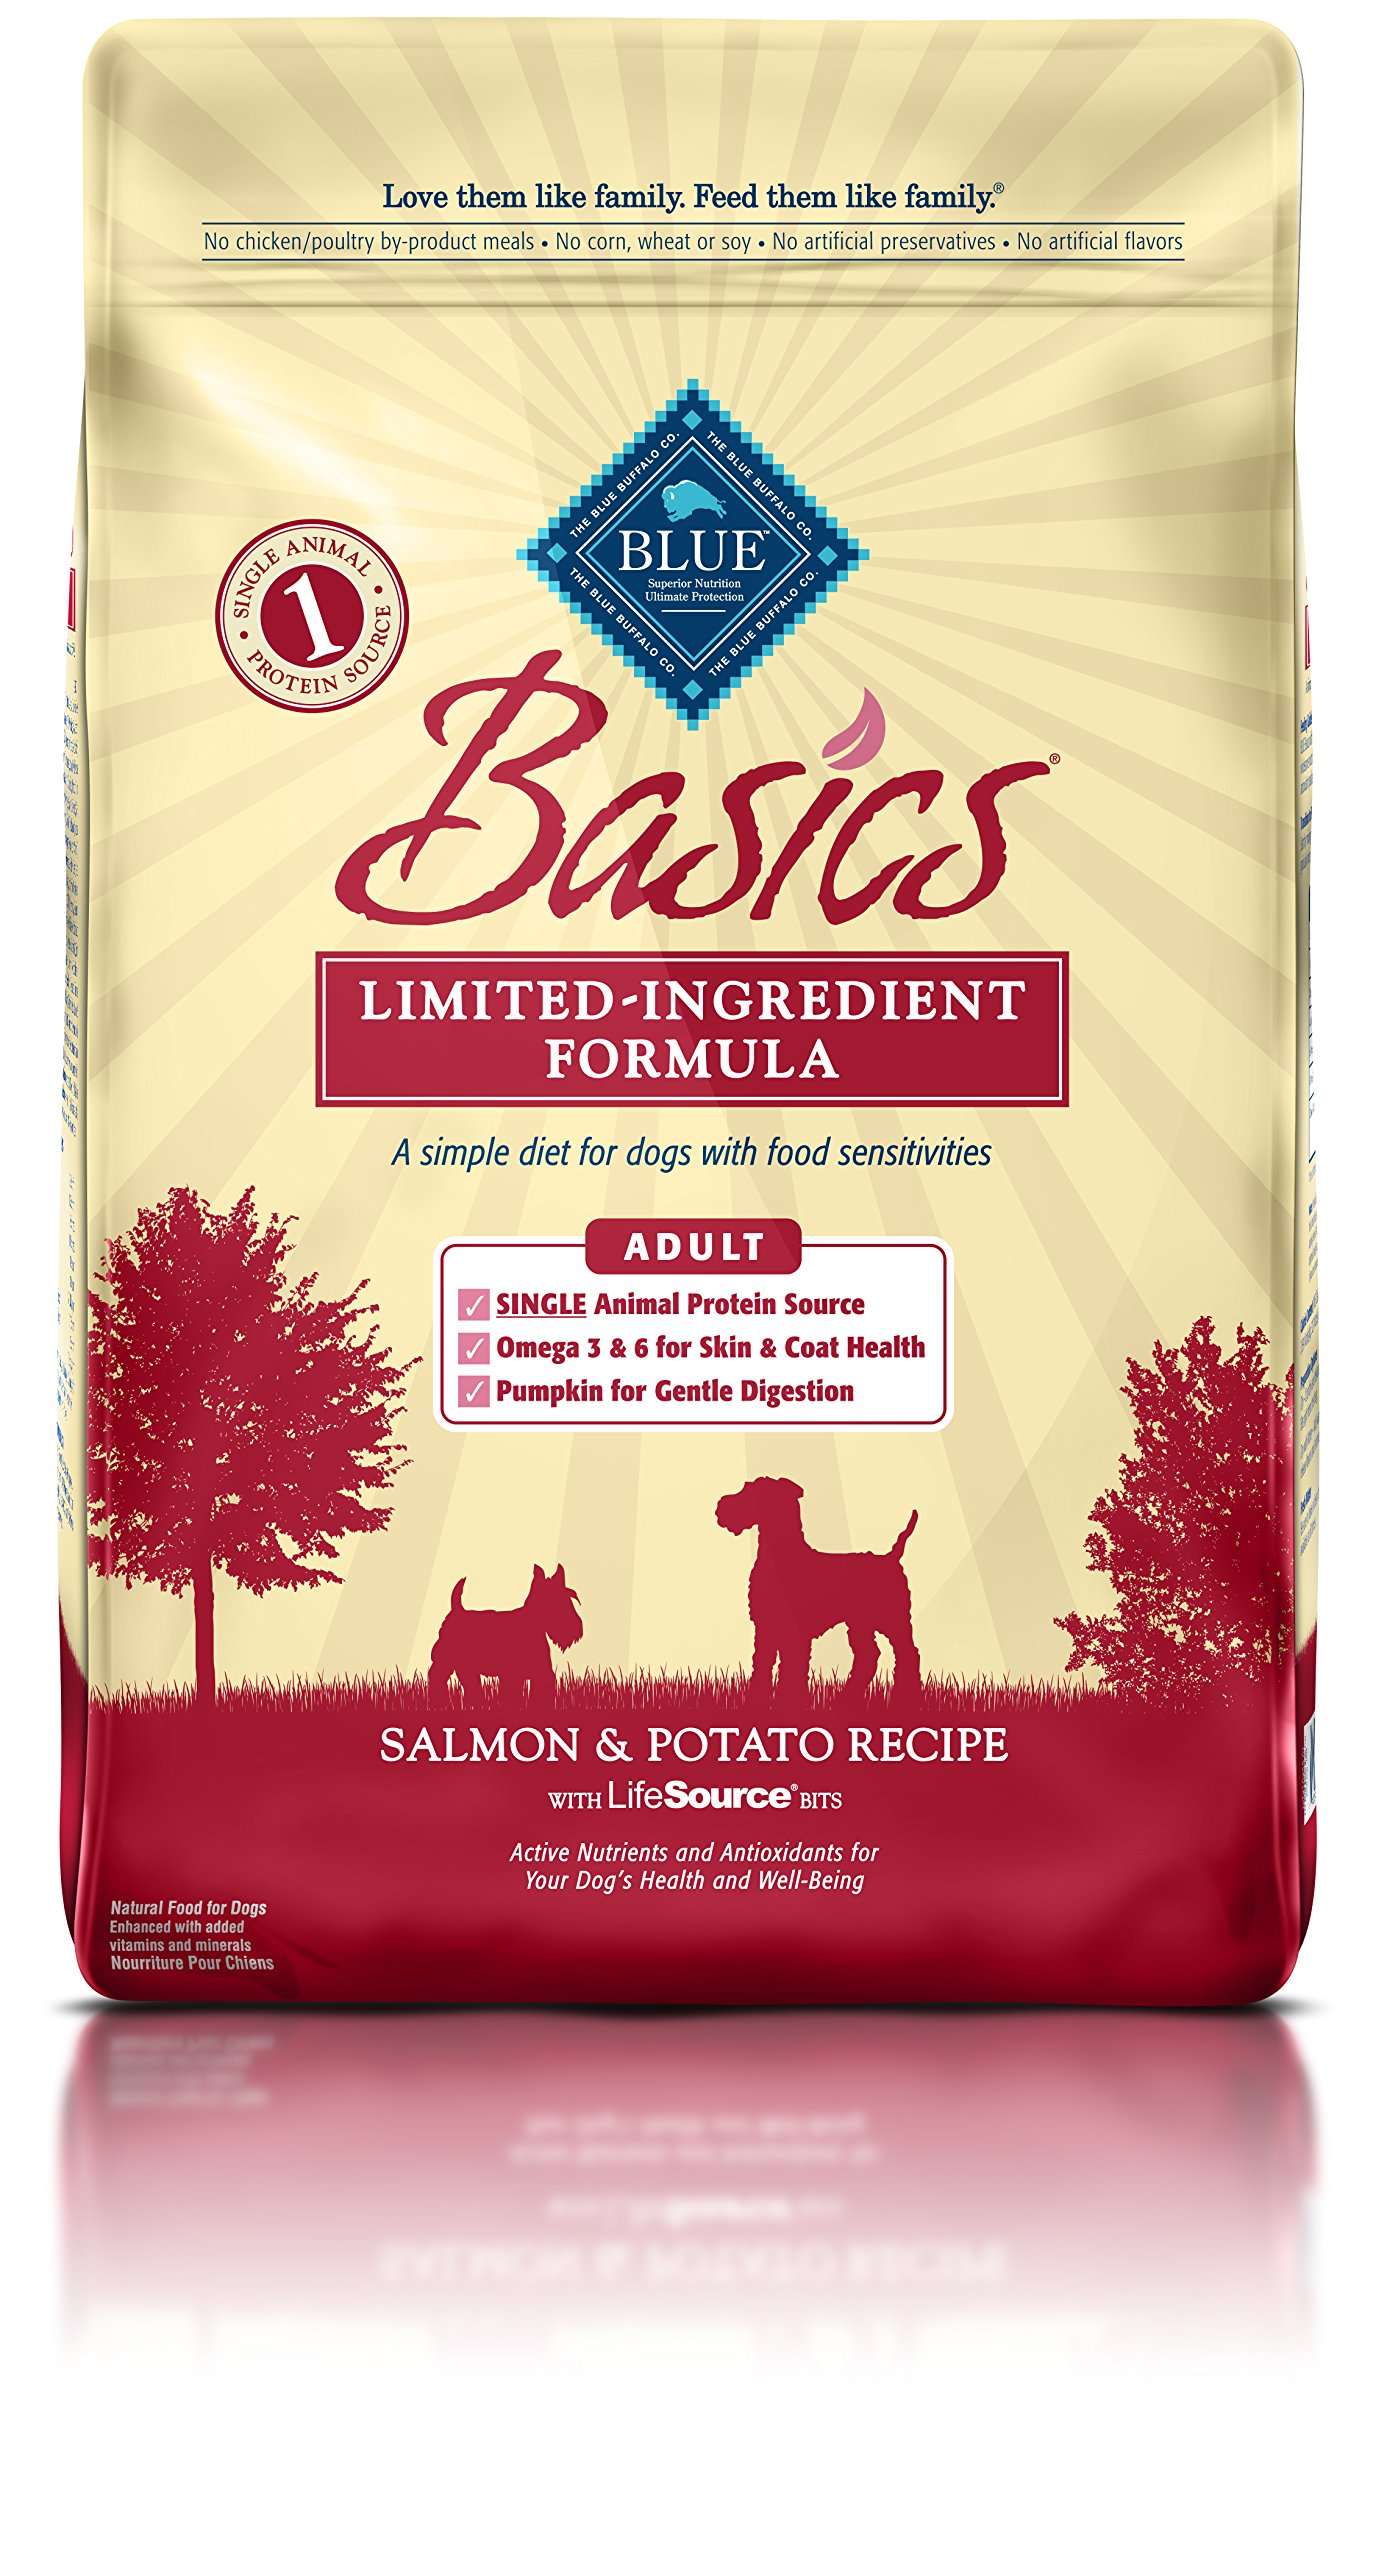 Blue Buffalo Basics Limited-Ingredient Dry Adult Dog Food Salmon and Potato